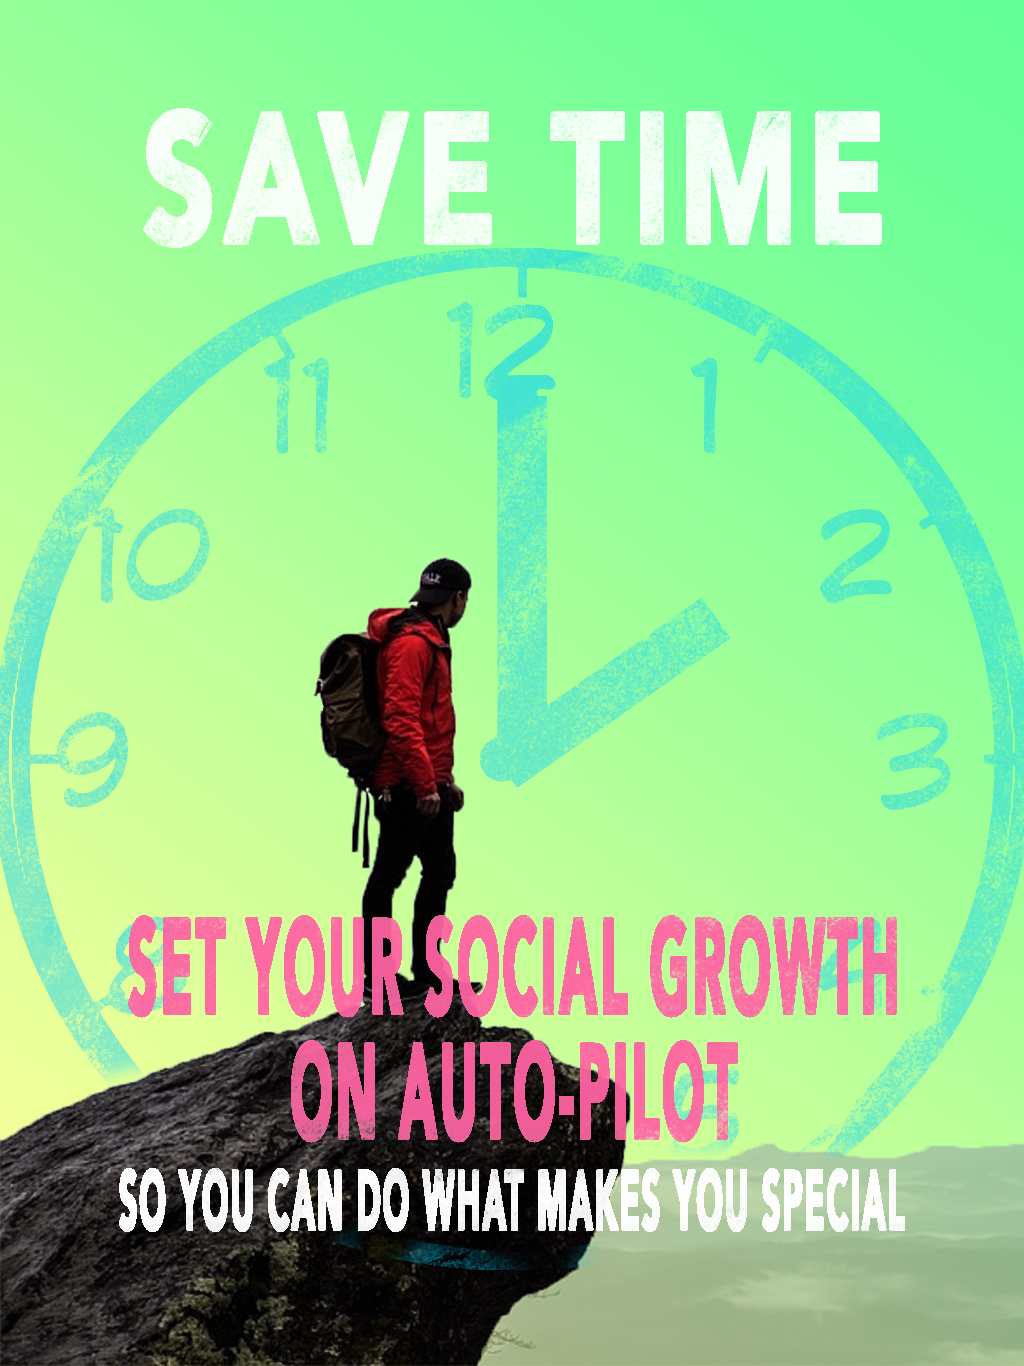 Save Time by growing your Instagram on Auto-Pilot with Sollevarsi SOCIAL.jpg